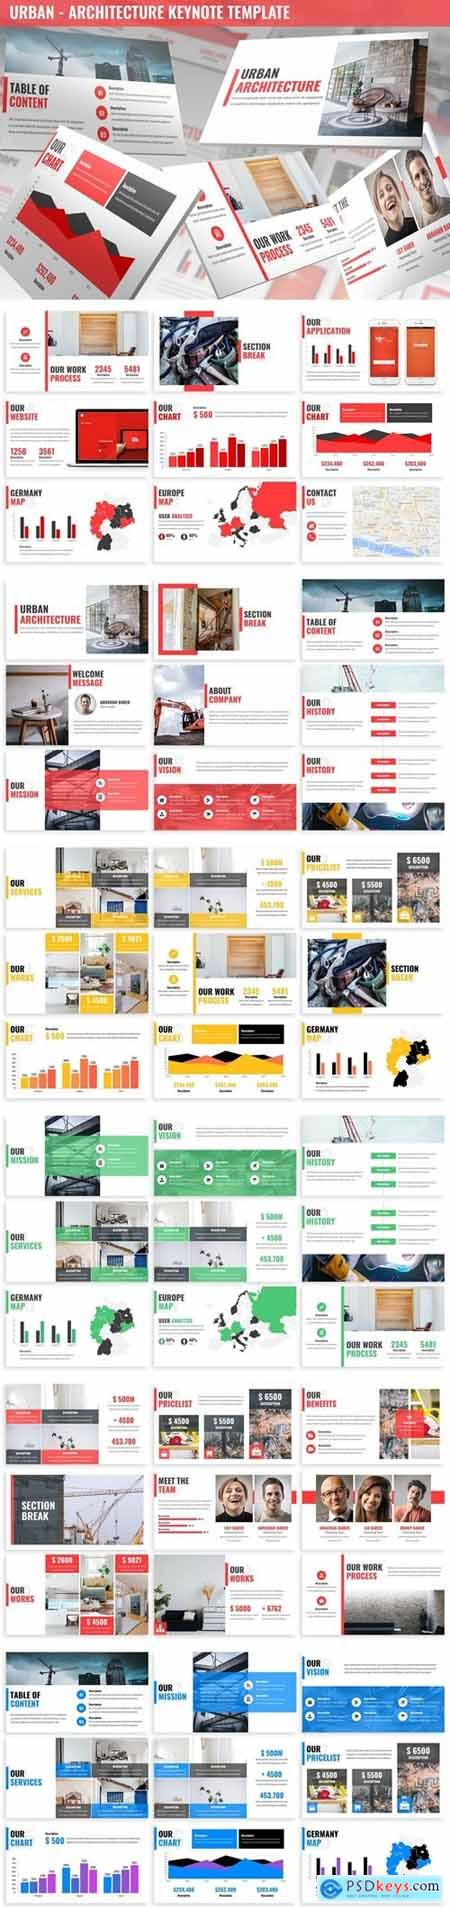 Urban - Architecture Keynote Template